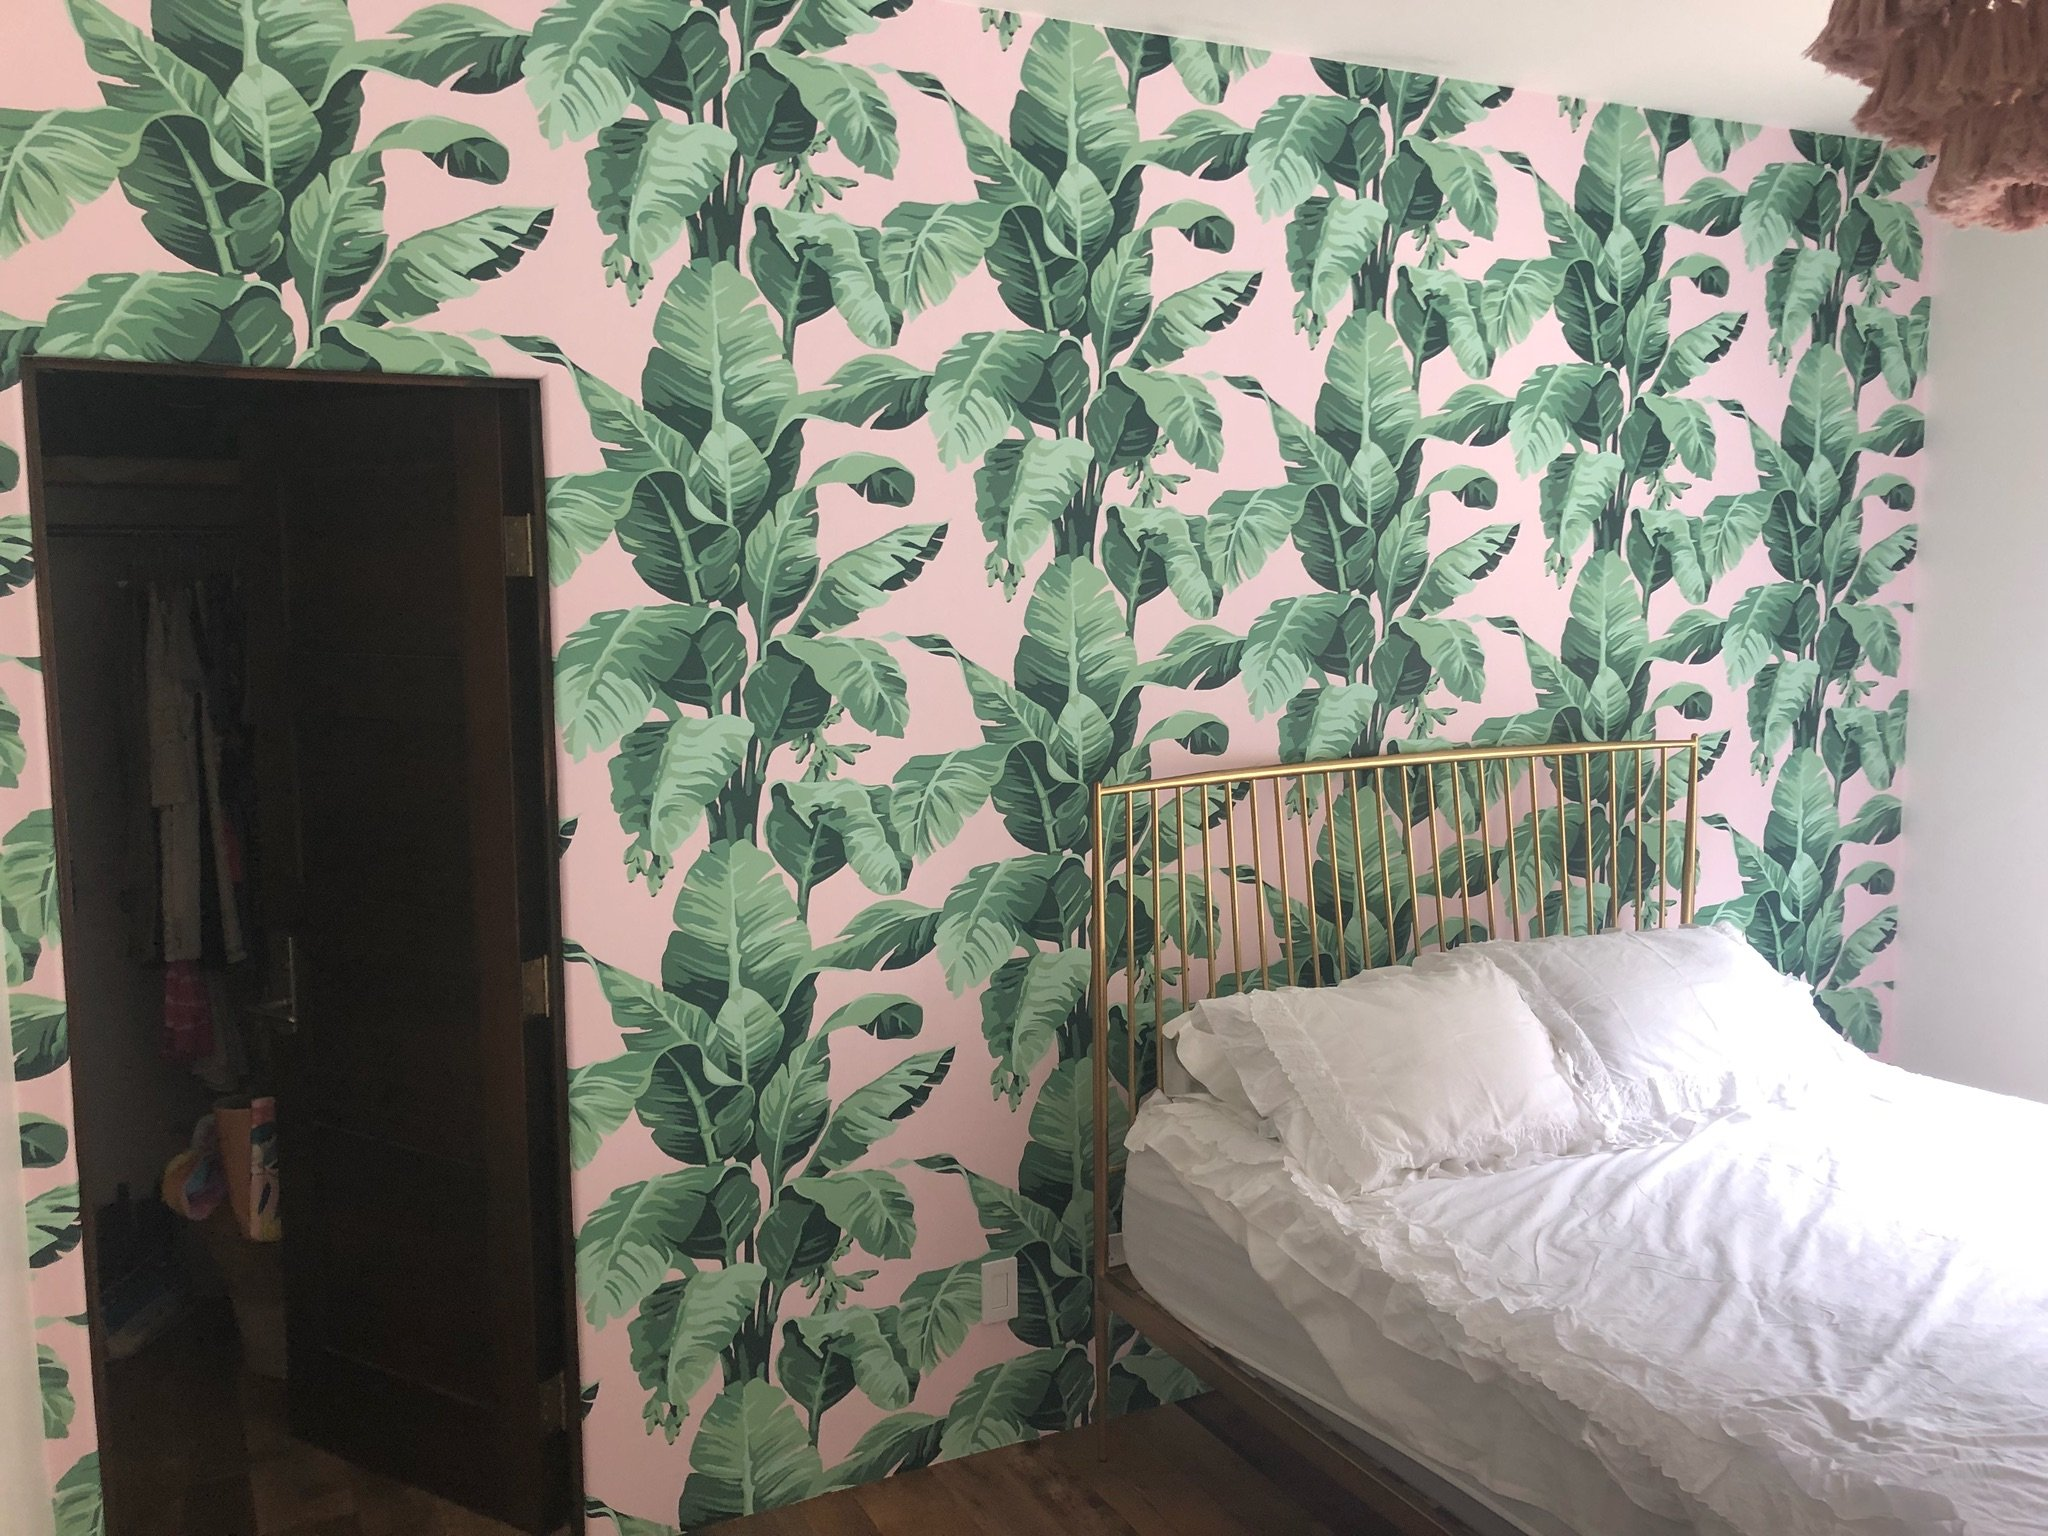 Home Wallpaper & Installation